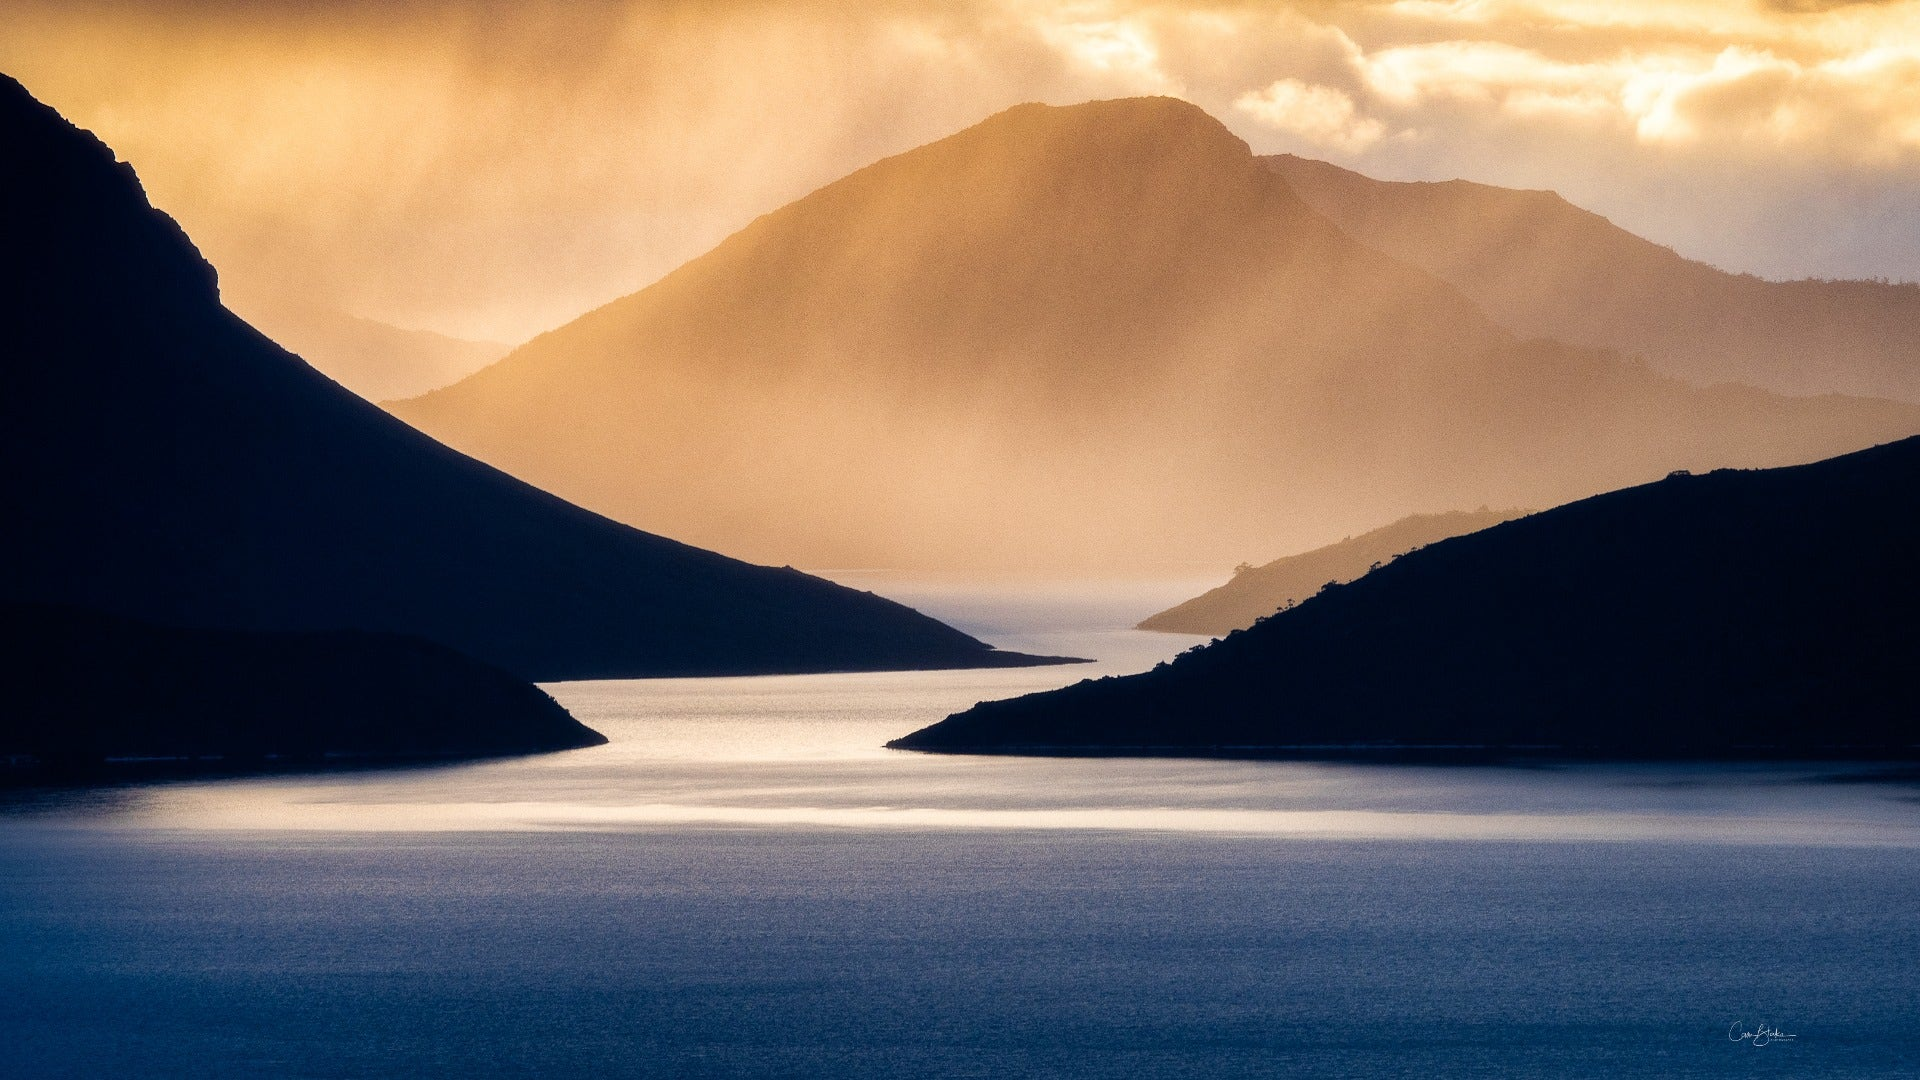 Lake Pedder. ©Cam Blake